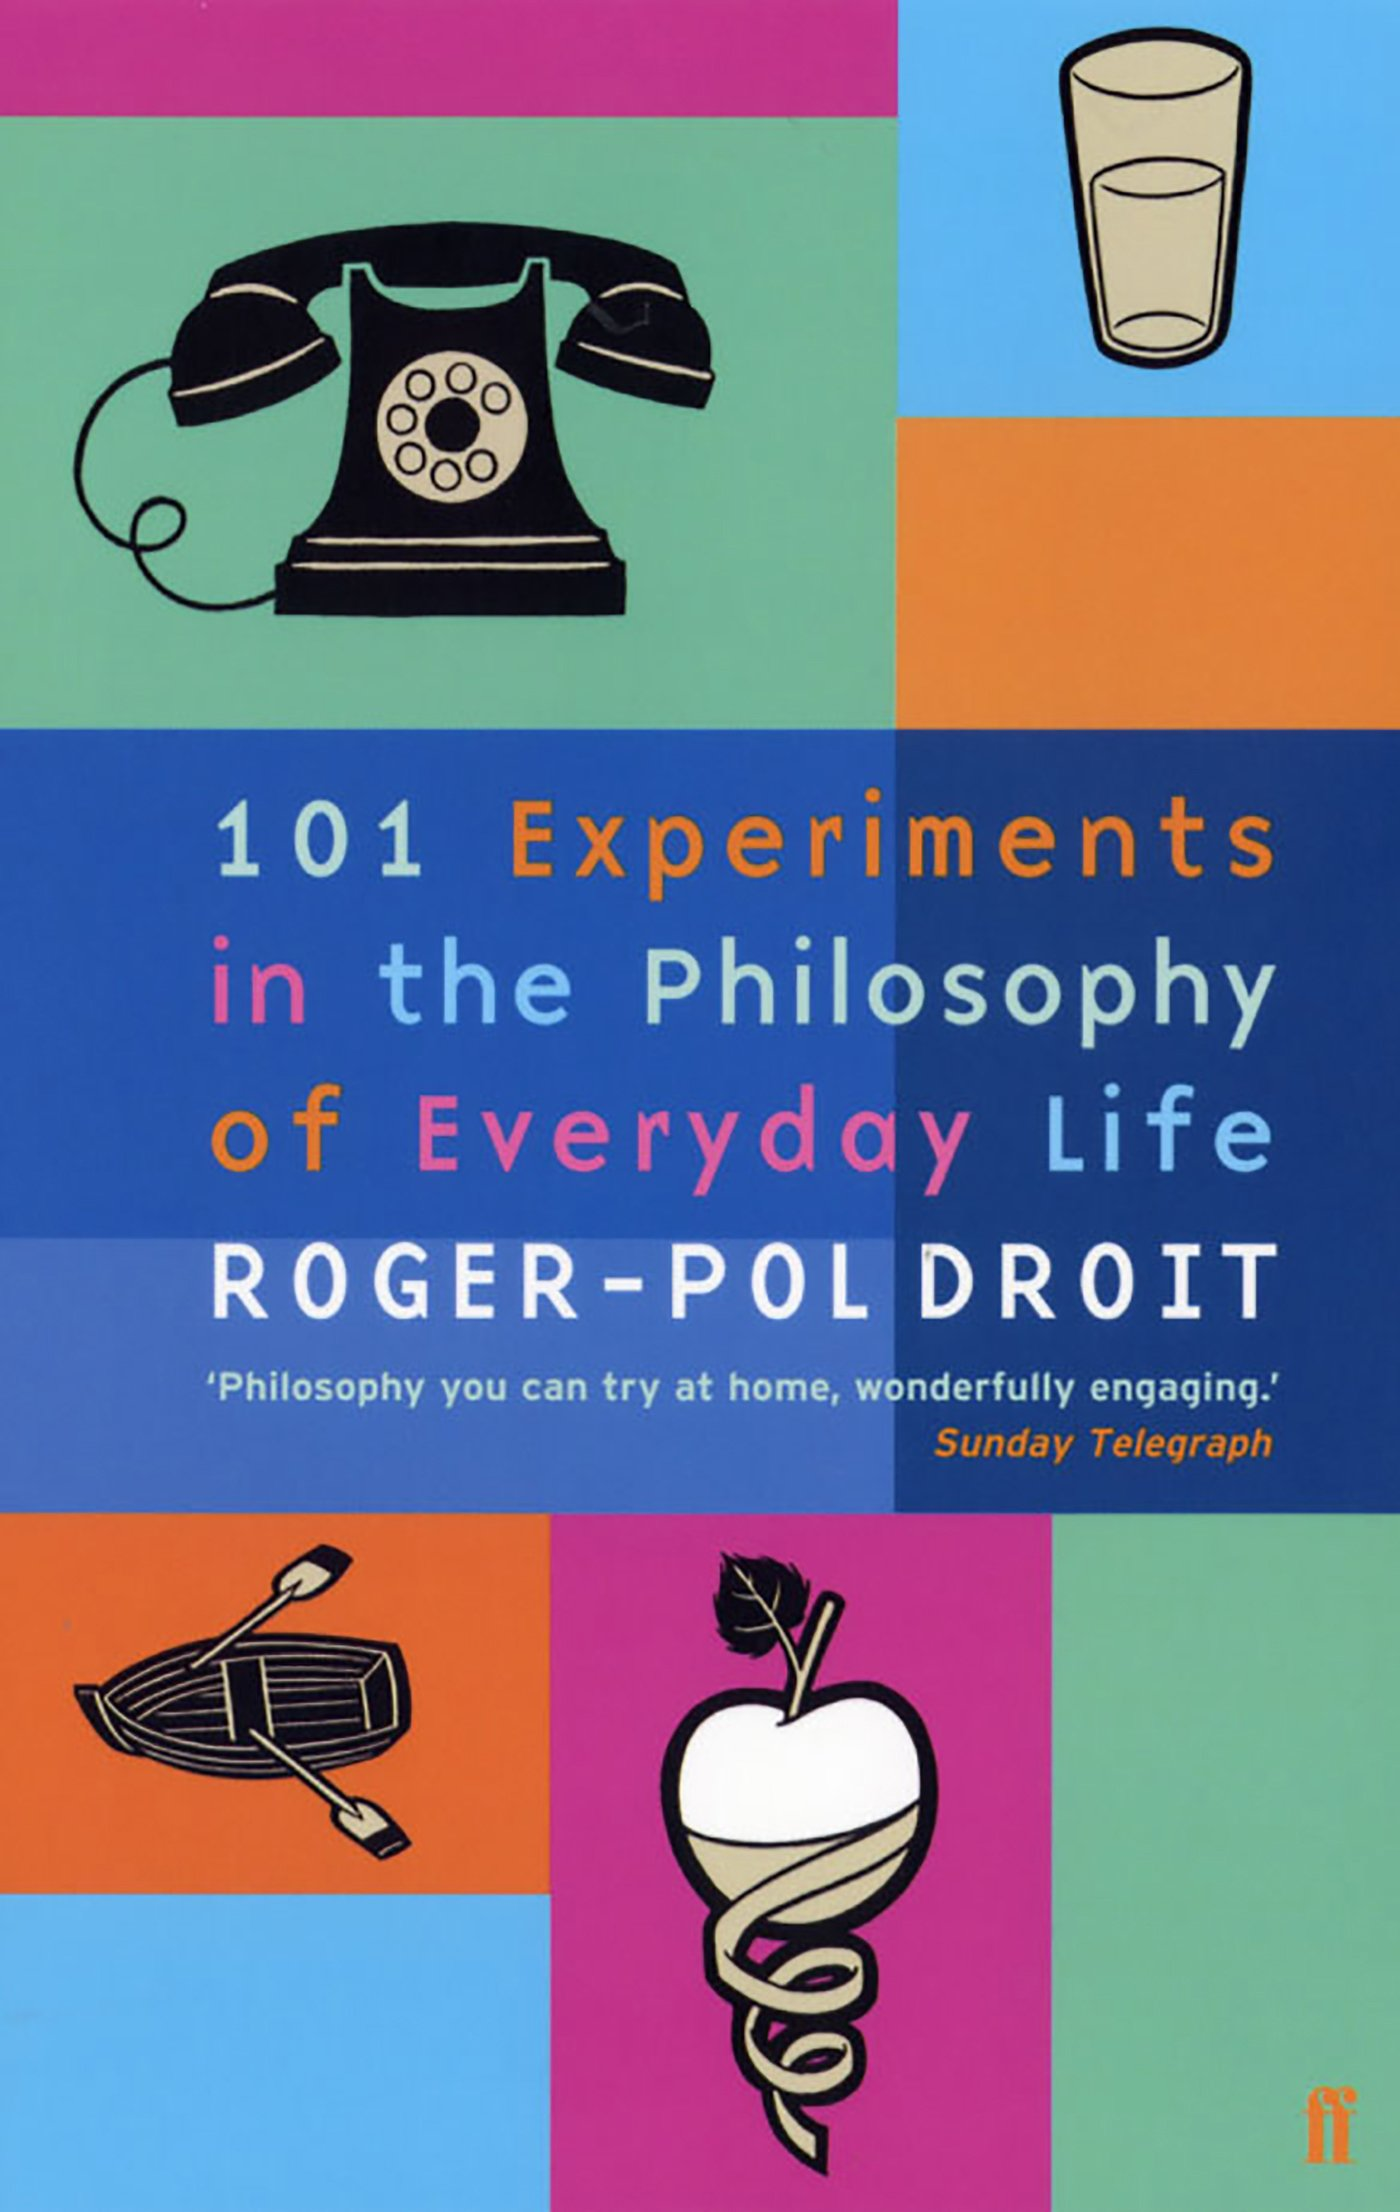 101 Experiments in the Philosophy of Everyday Life: Roger-Pol Droit,  Stephen Romer: 9780571212064: Amazon.com: Books